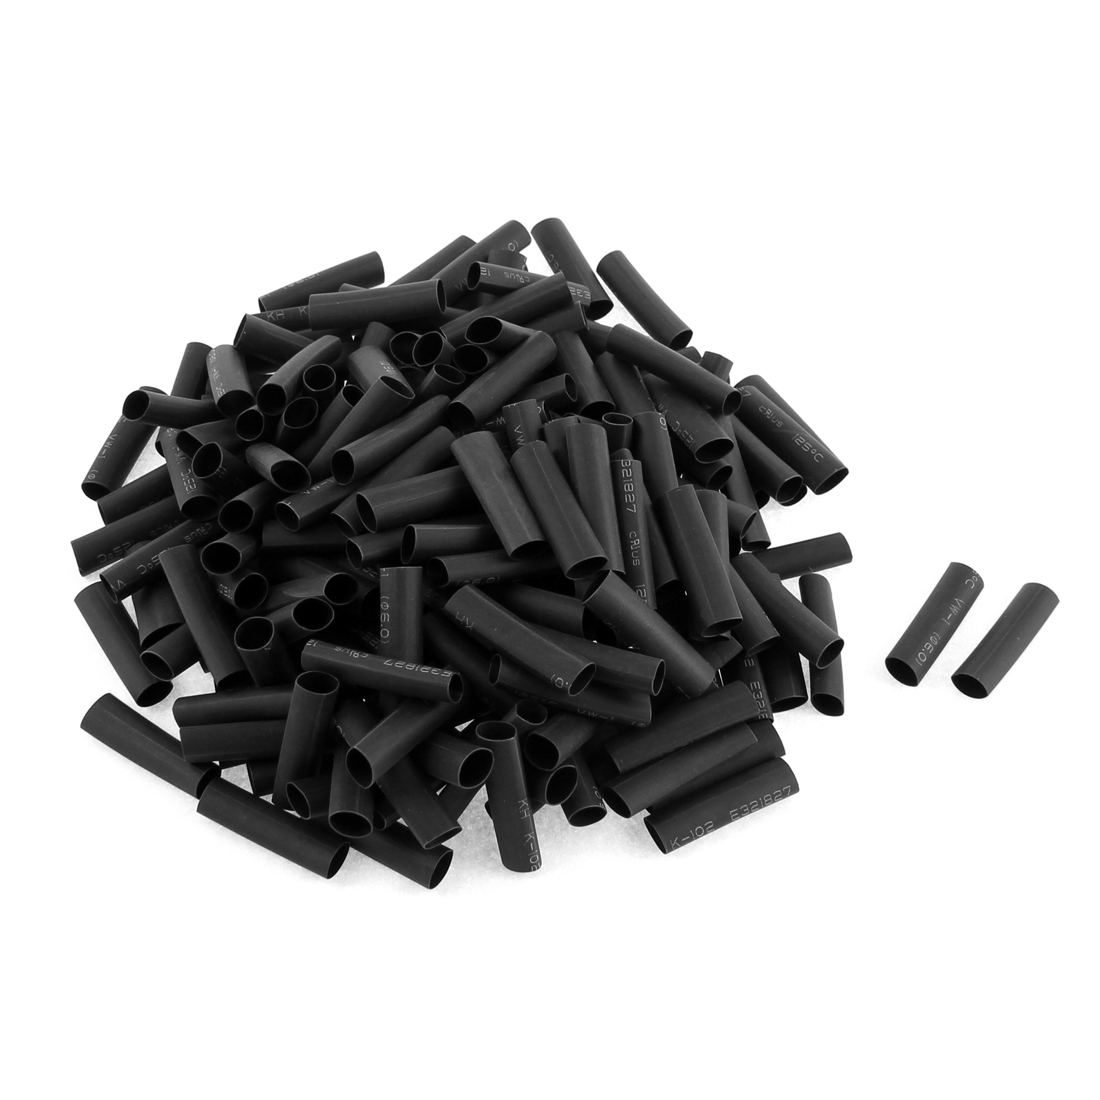 Electrical Connection Cable Sleeve 30mm Length Heat Shrink Tubing Black 200Pcs